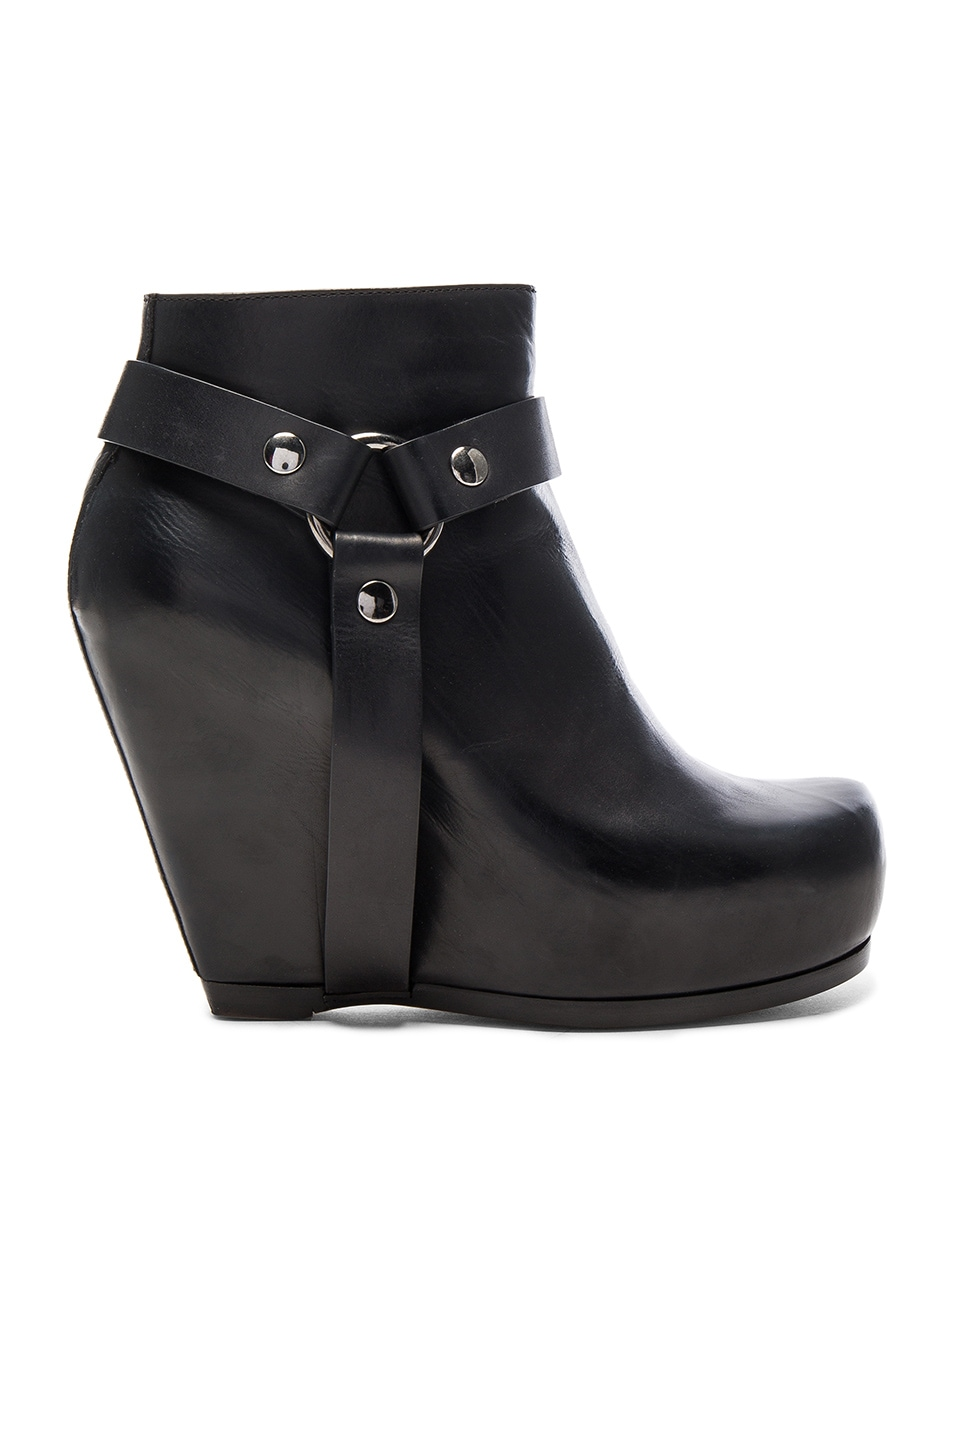 Image 1 of Rick Owens Harness Zip Leather Wedge Boots in Black